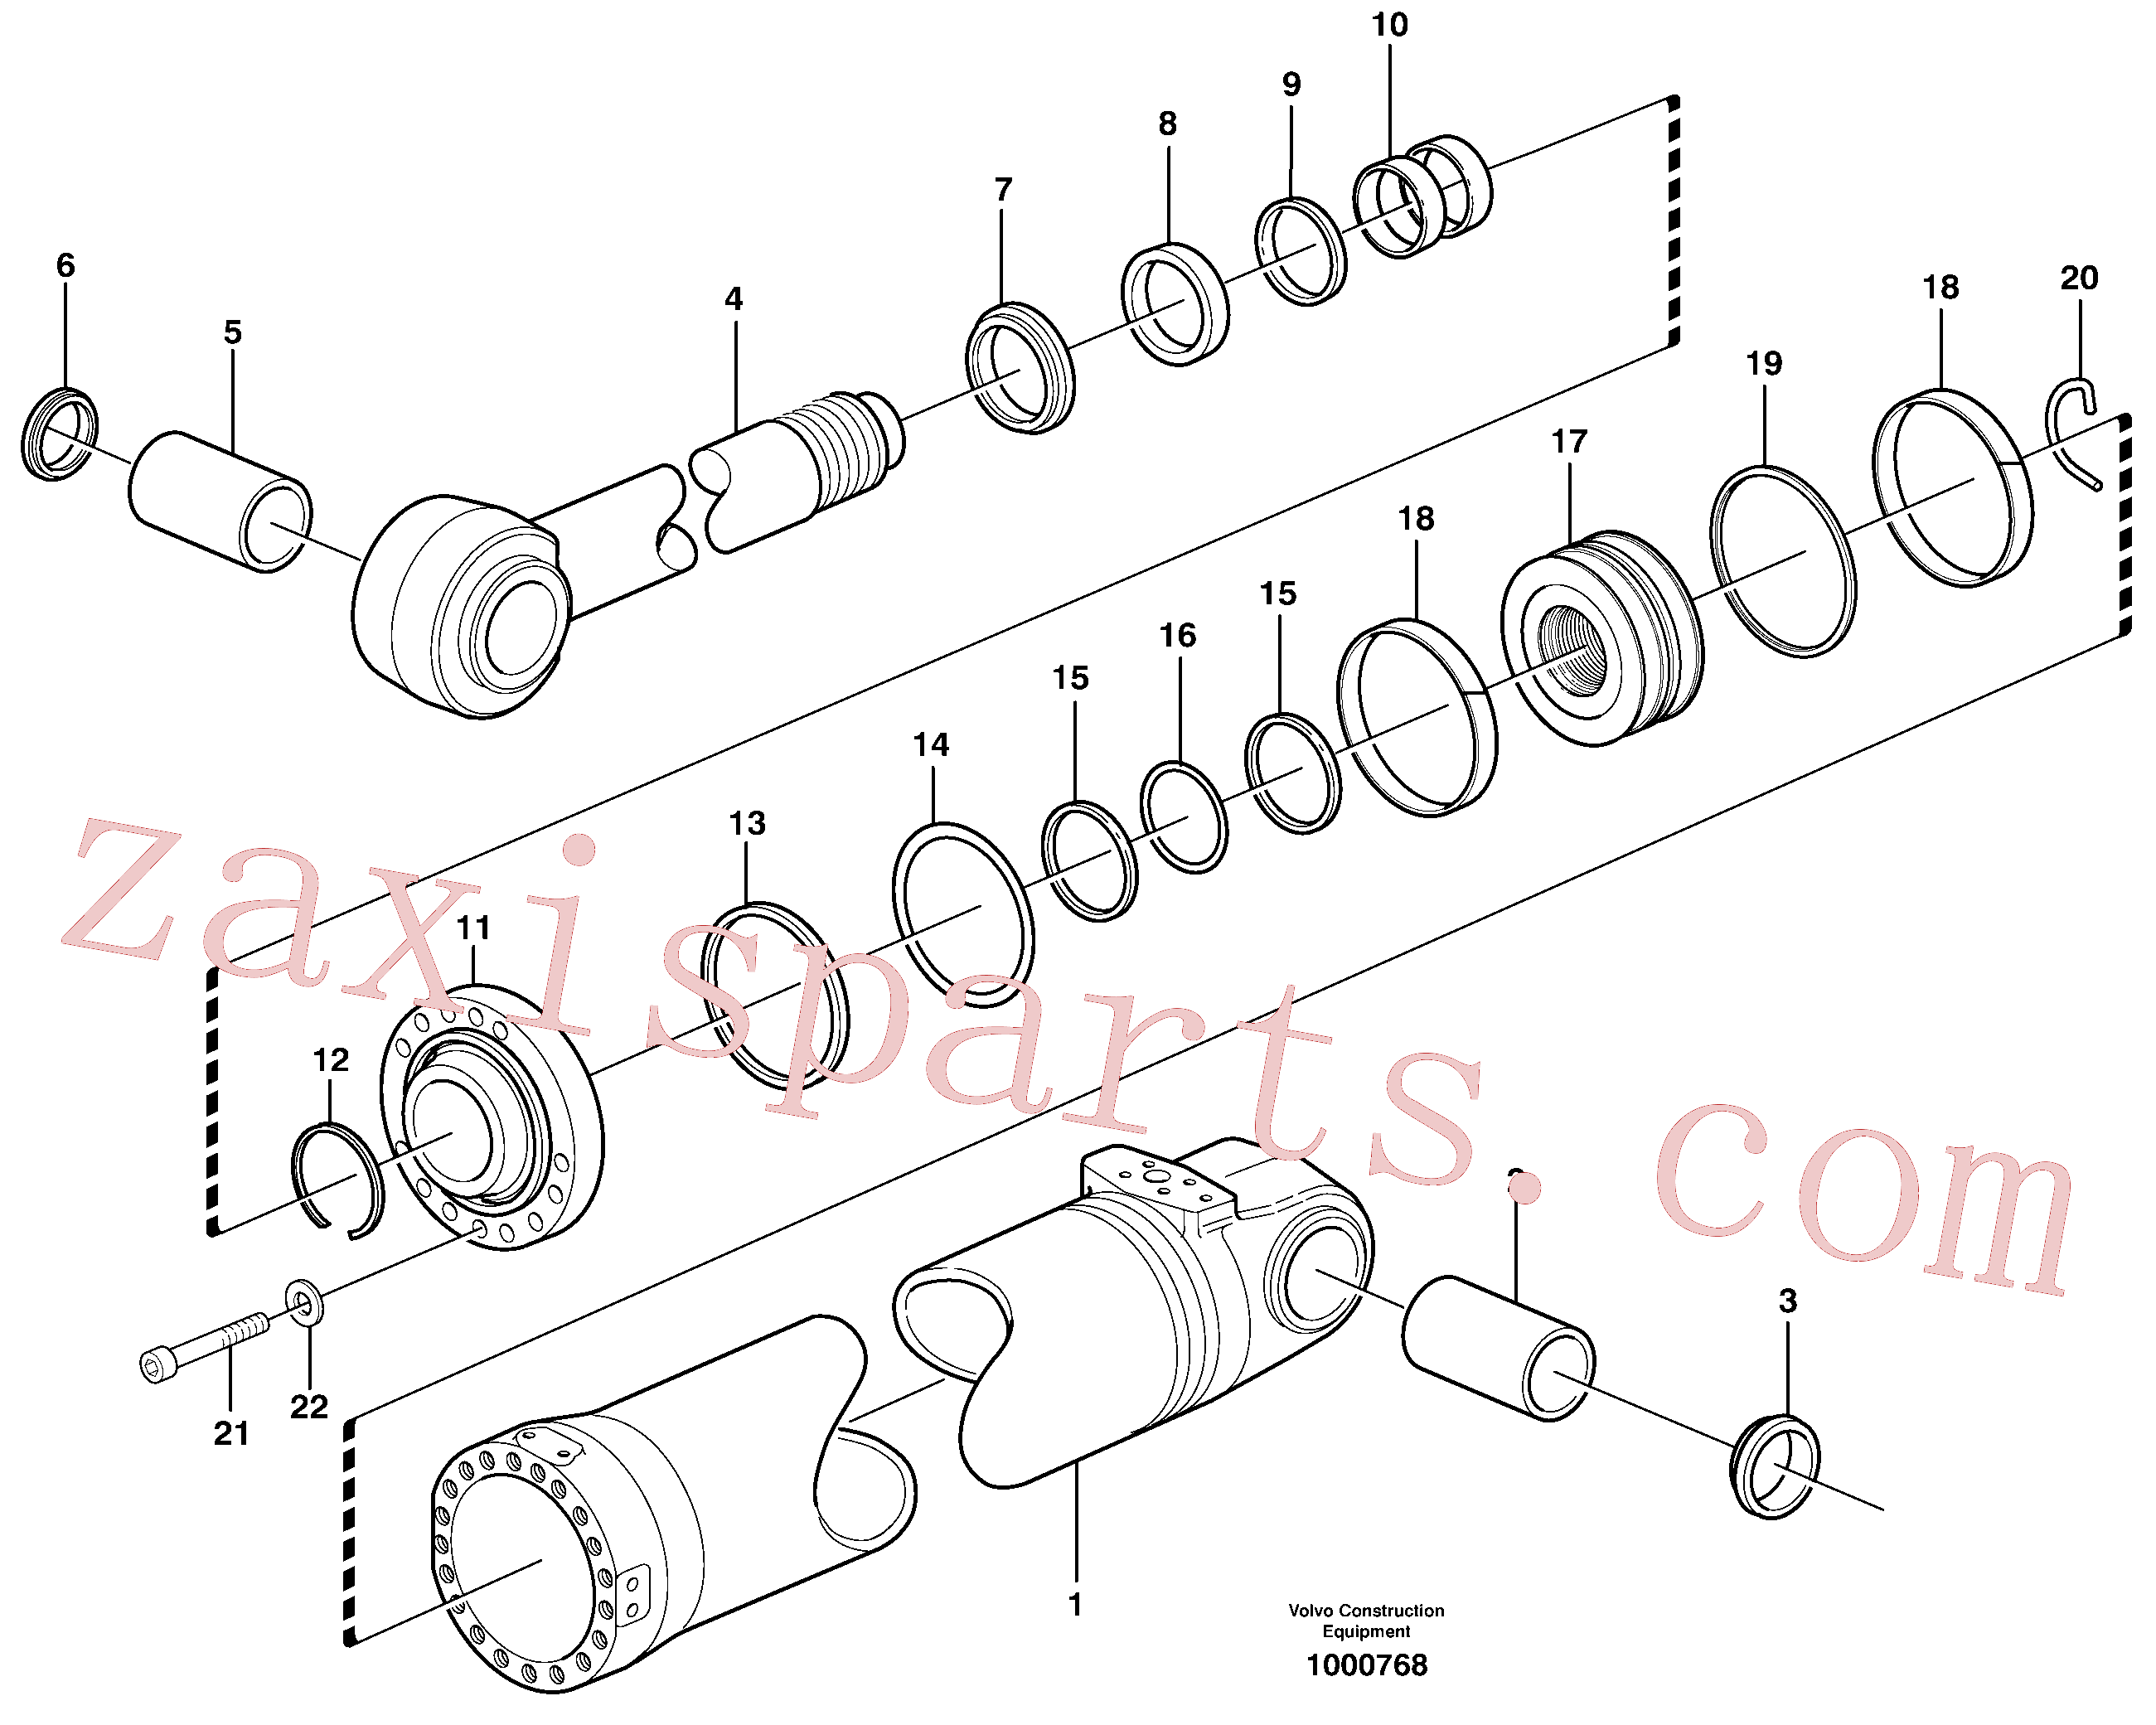 VOE966851 for Volvo Hydraulic cylinder, tilting(1000768 assembly)